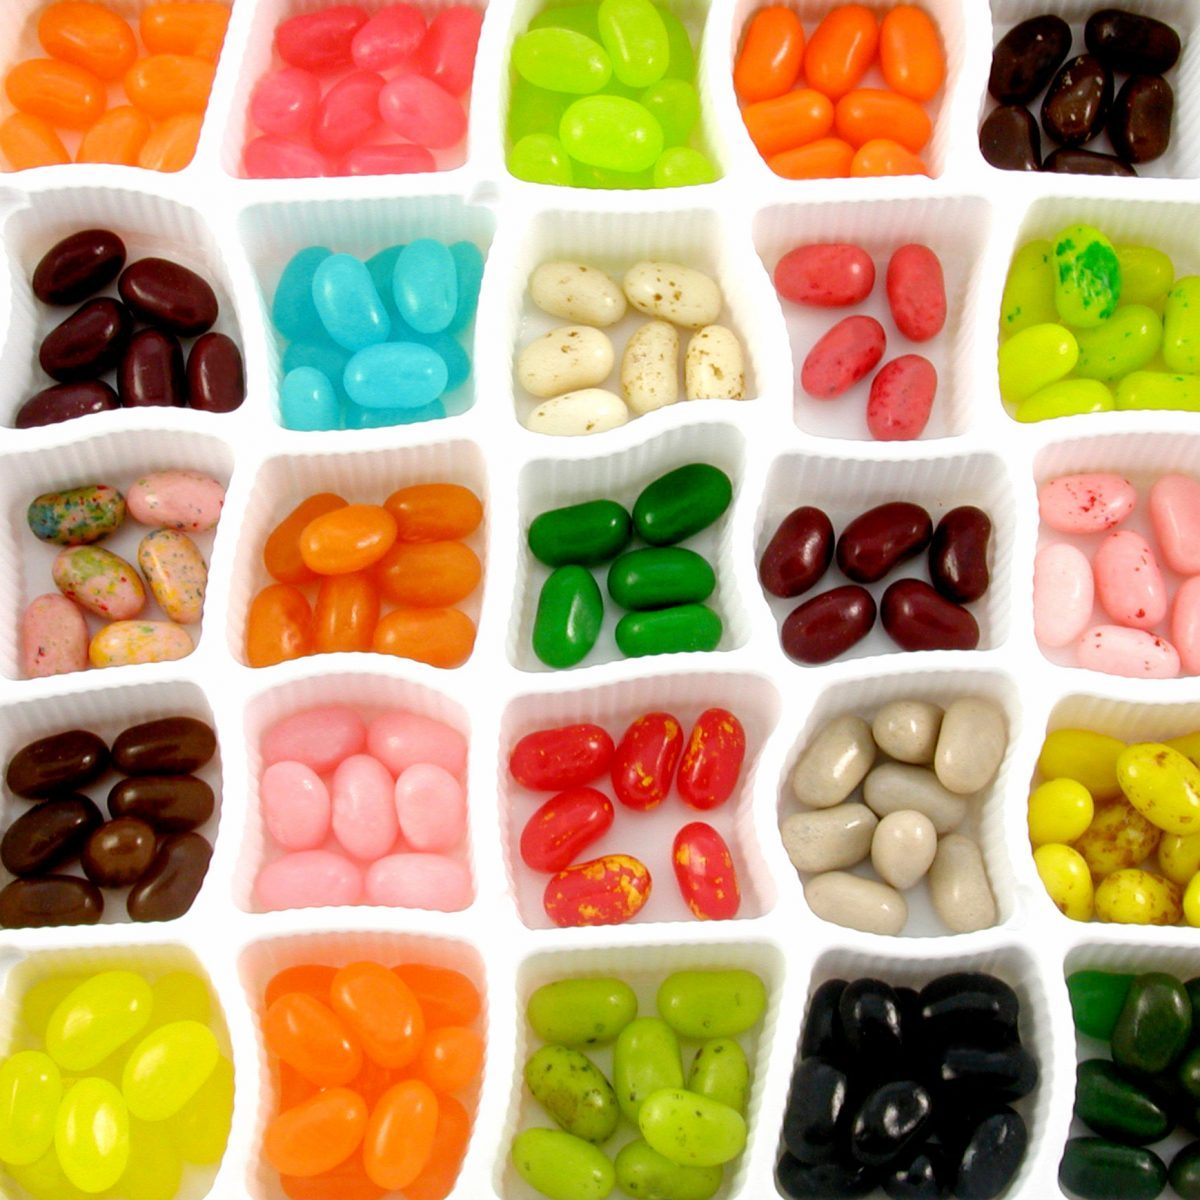 f78953069c5 8 Surprising Facts About Jelly Beans